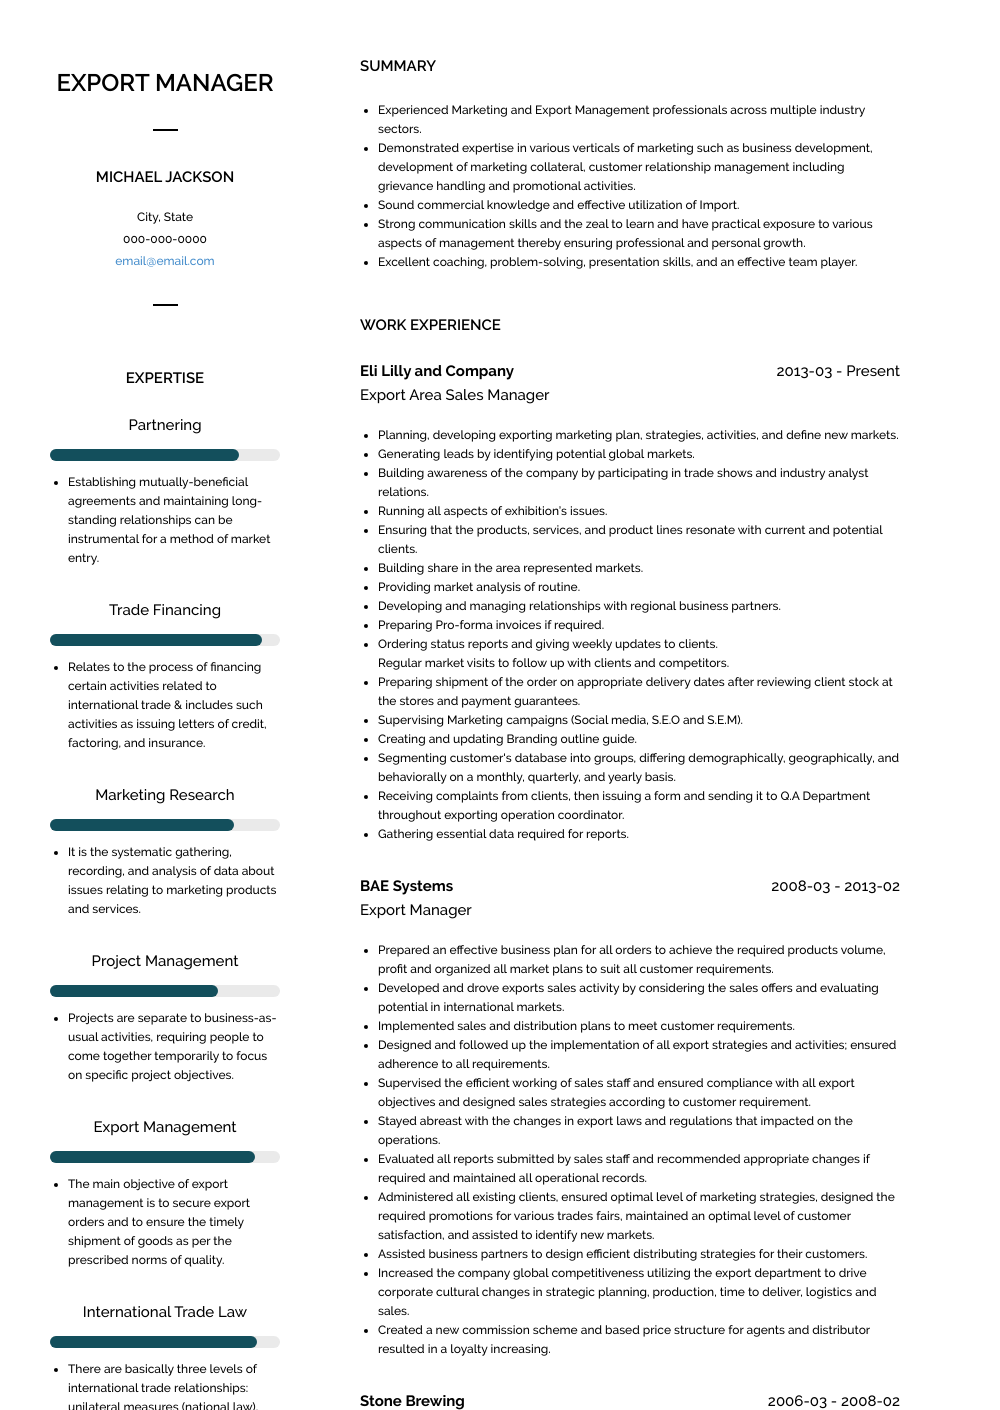 Export Manager Resume Sample and Template